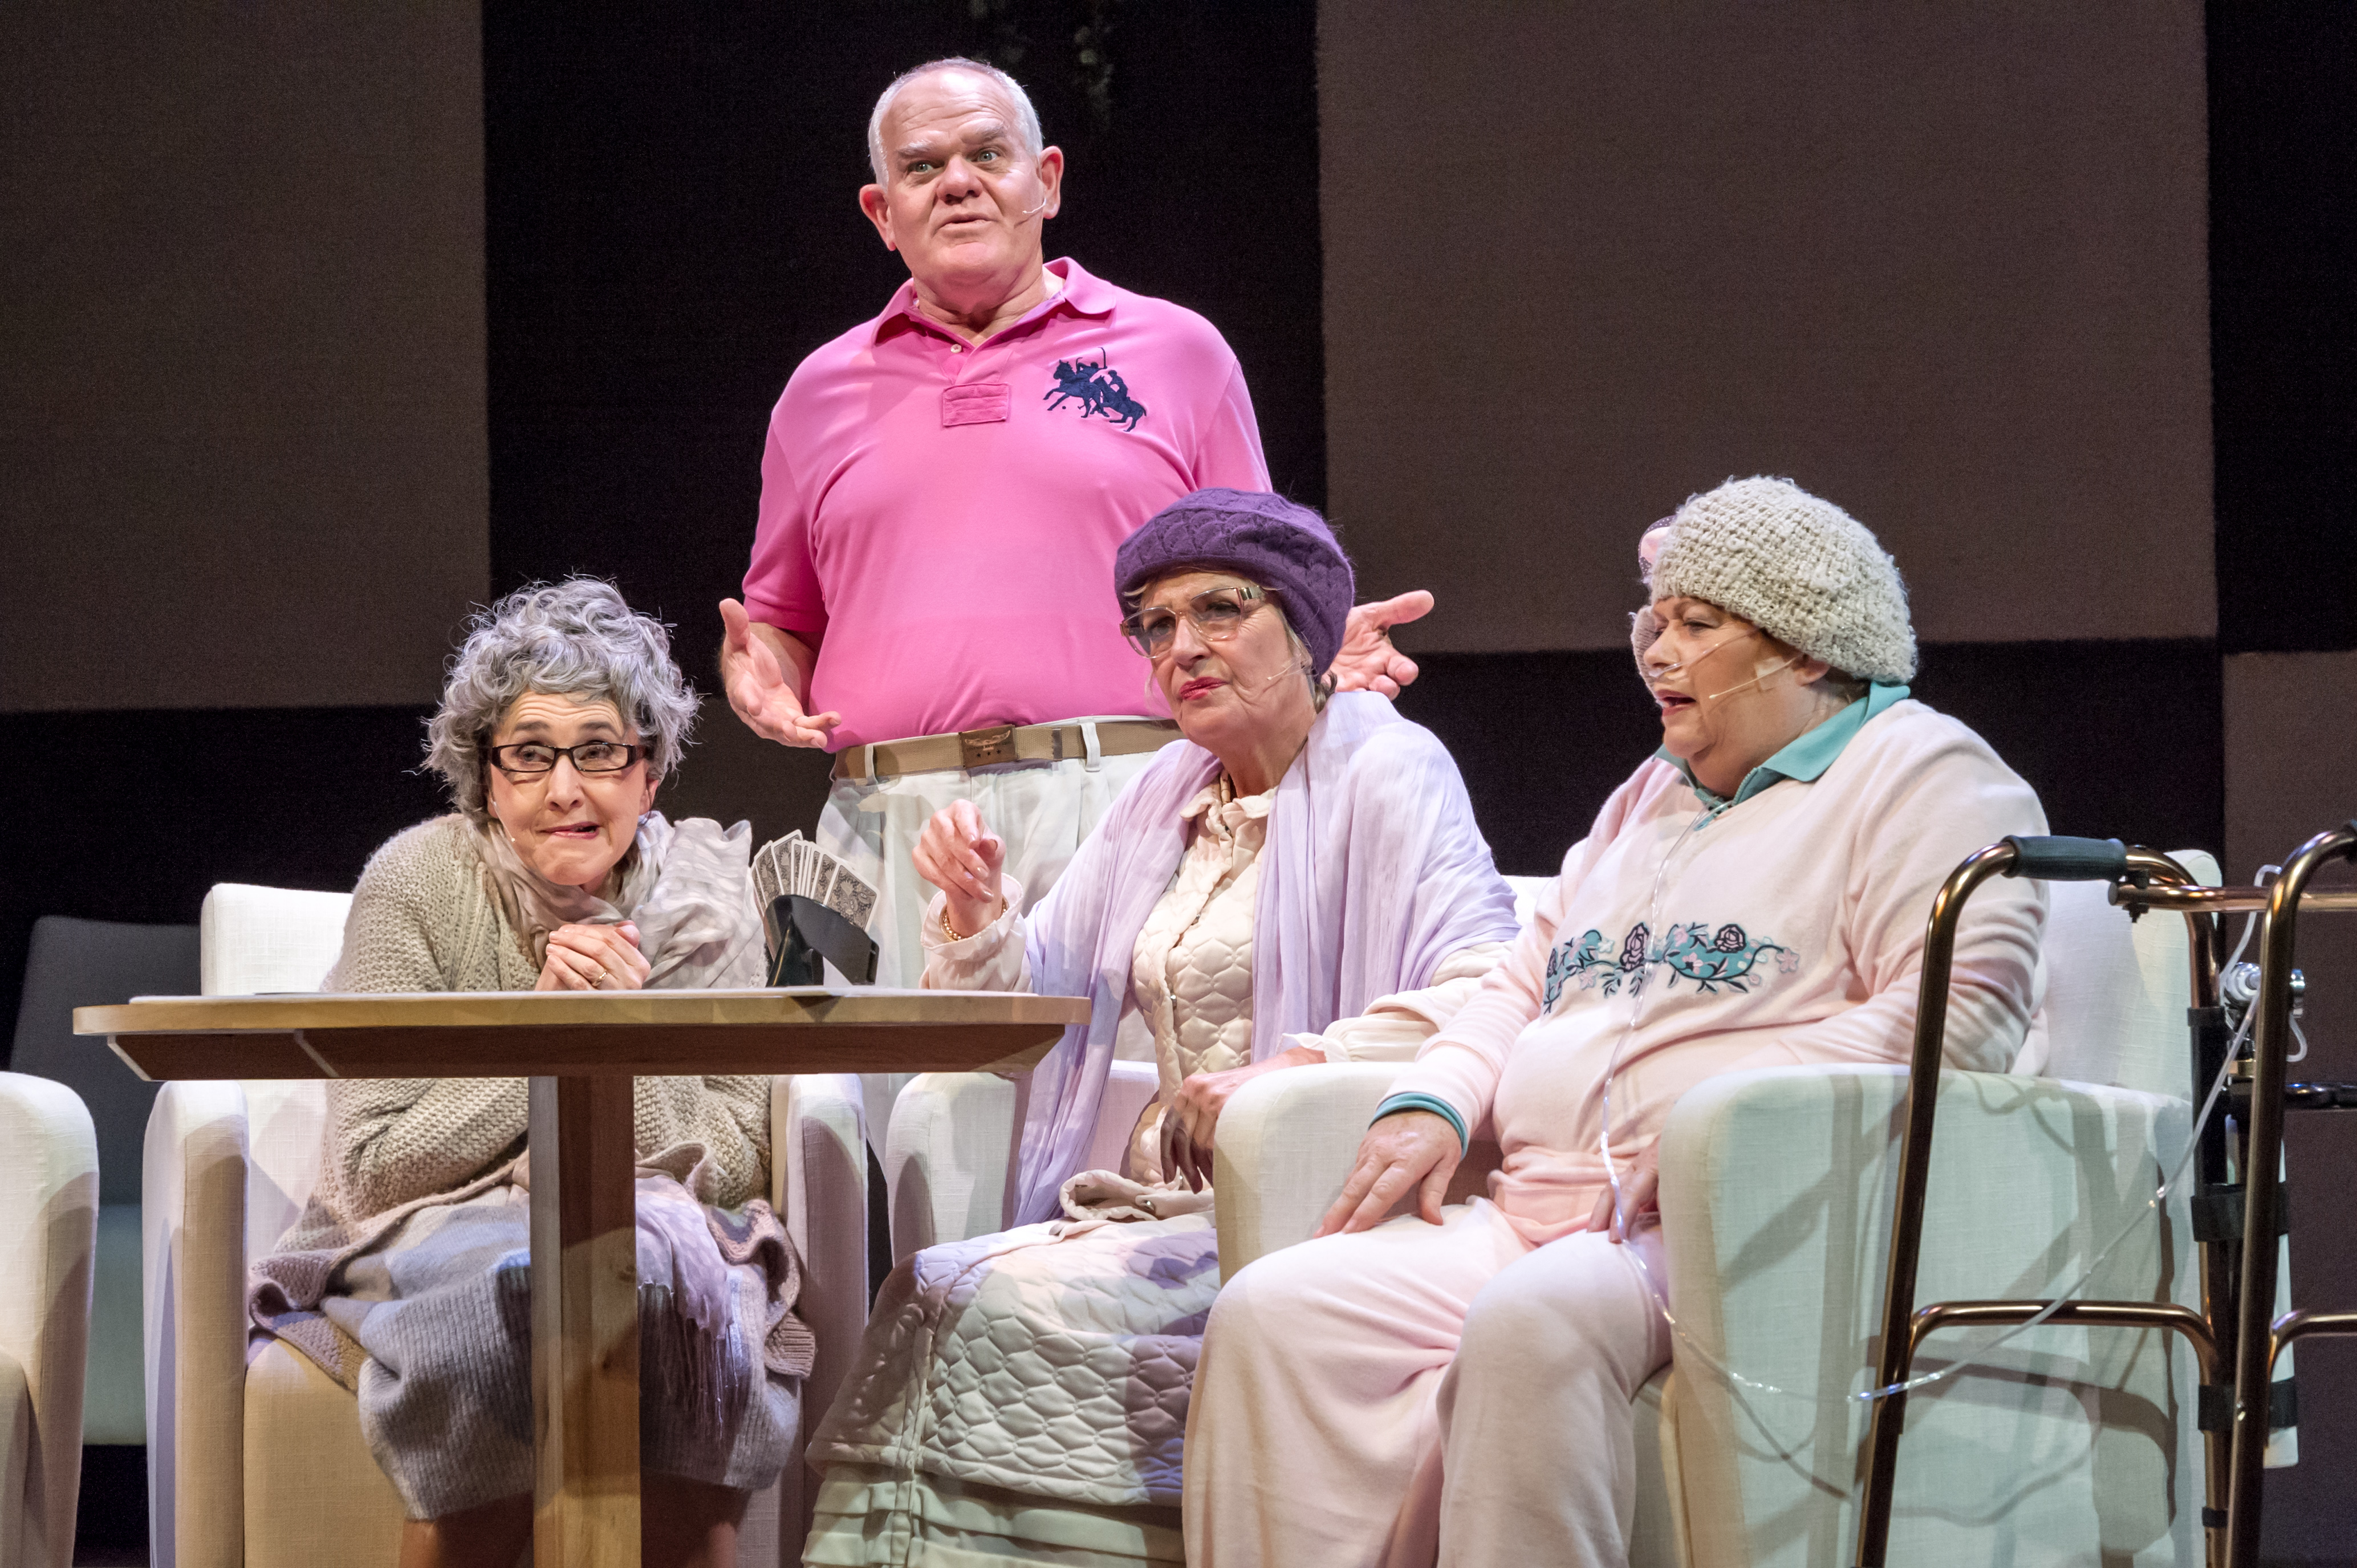 BWW Review: LAST LEGS at ASB Waterfront Auckland